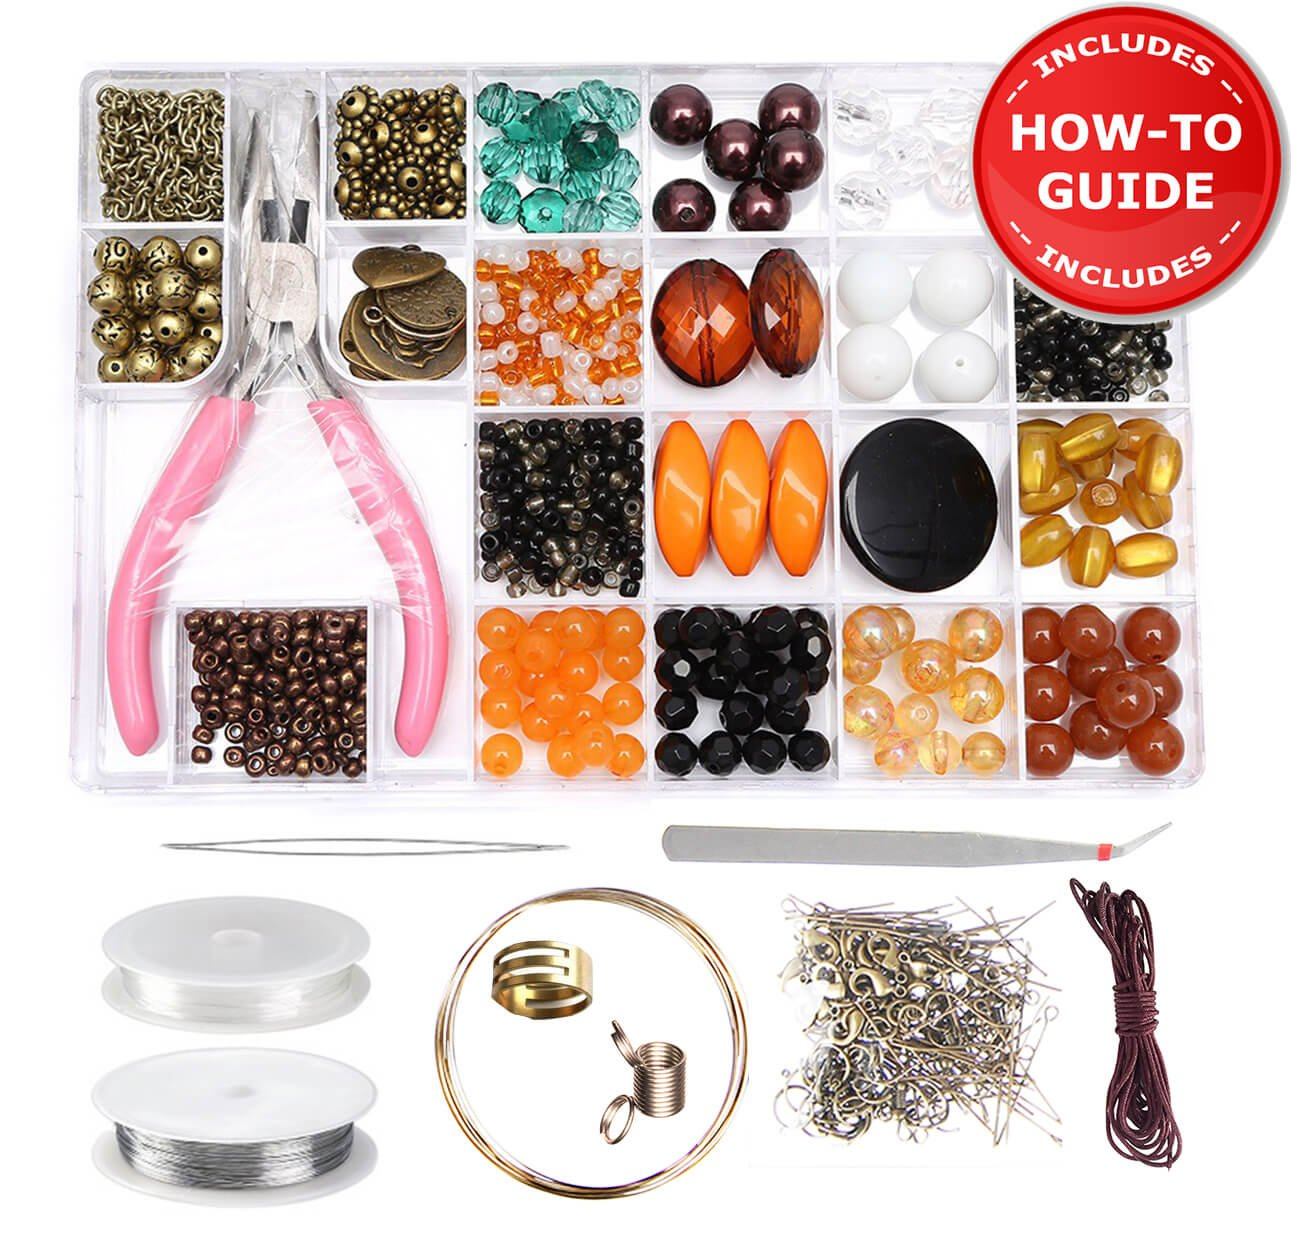 Jewelry Making Kit - Wire Jewelry Making Supplies for Adults, Girls, Teen, Women. Includes All Tools, Unique Beads for Making DIY Necklaces, Bracelets, Earrings, Instructions for Beginners | Bronze Modda